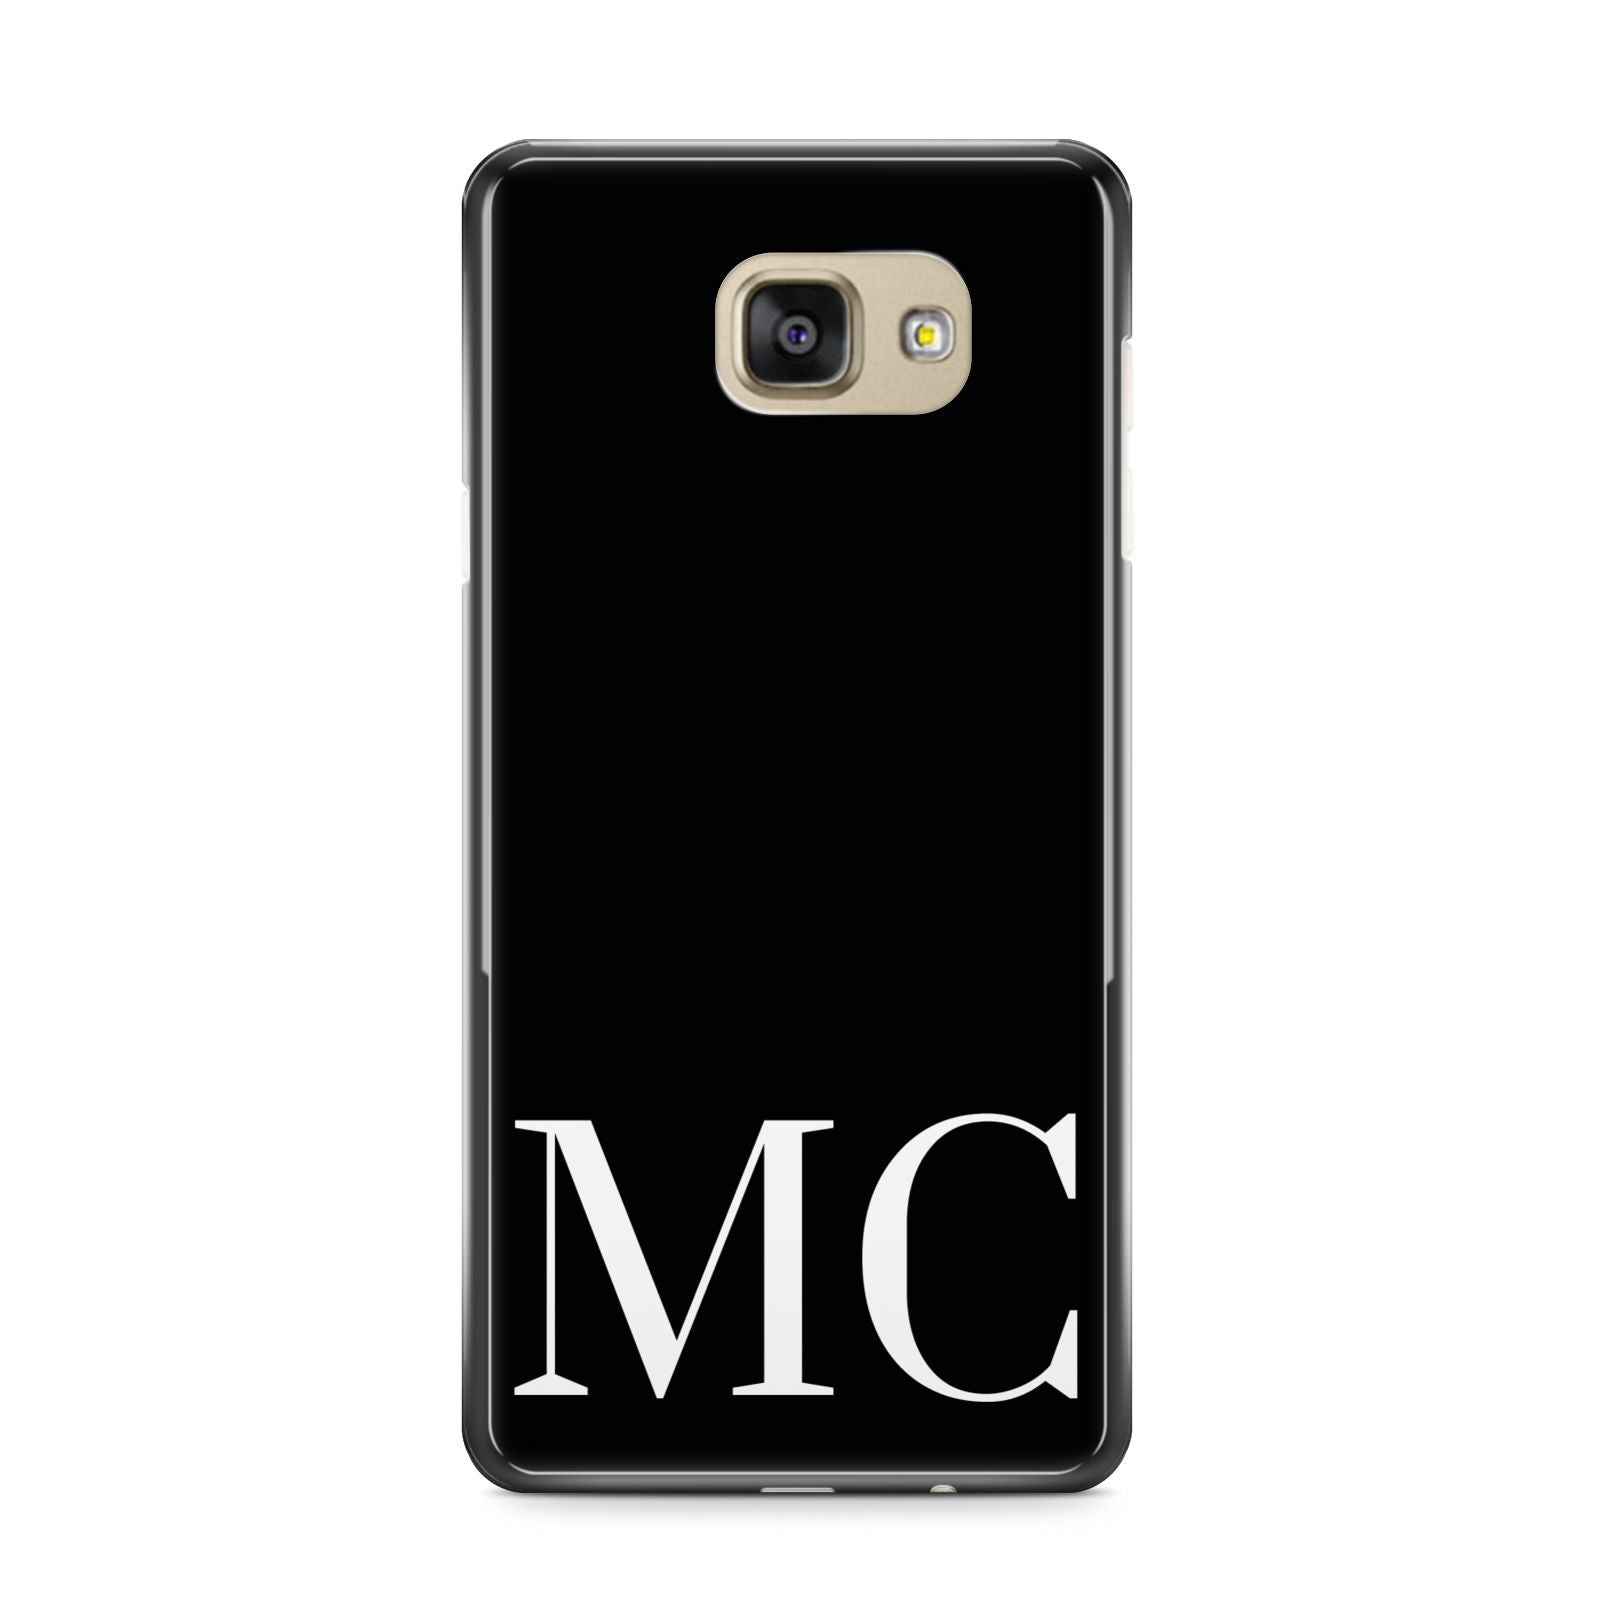 Initials Personalised 1 Samsung Galaxy A9 2016 Case on gold phone